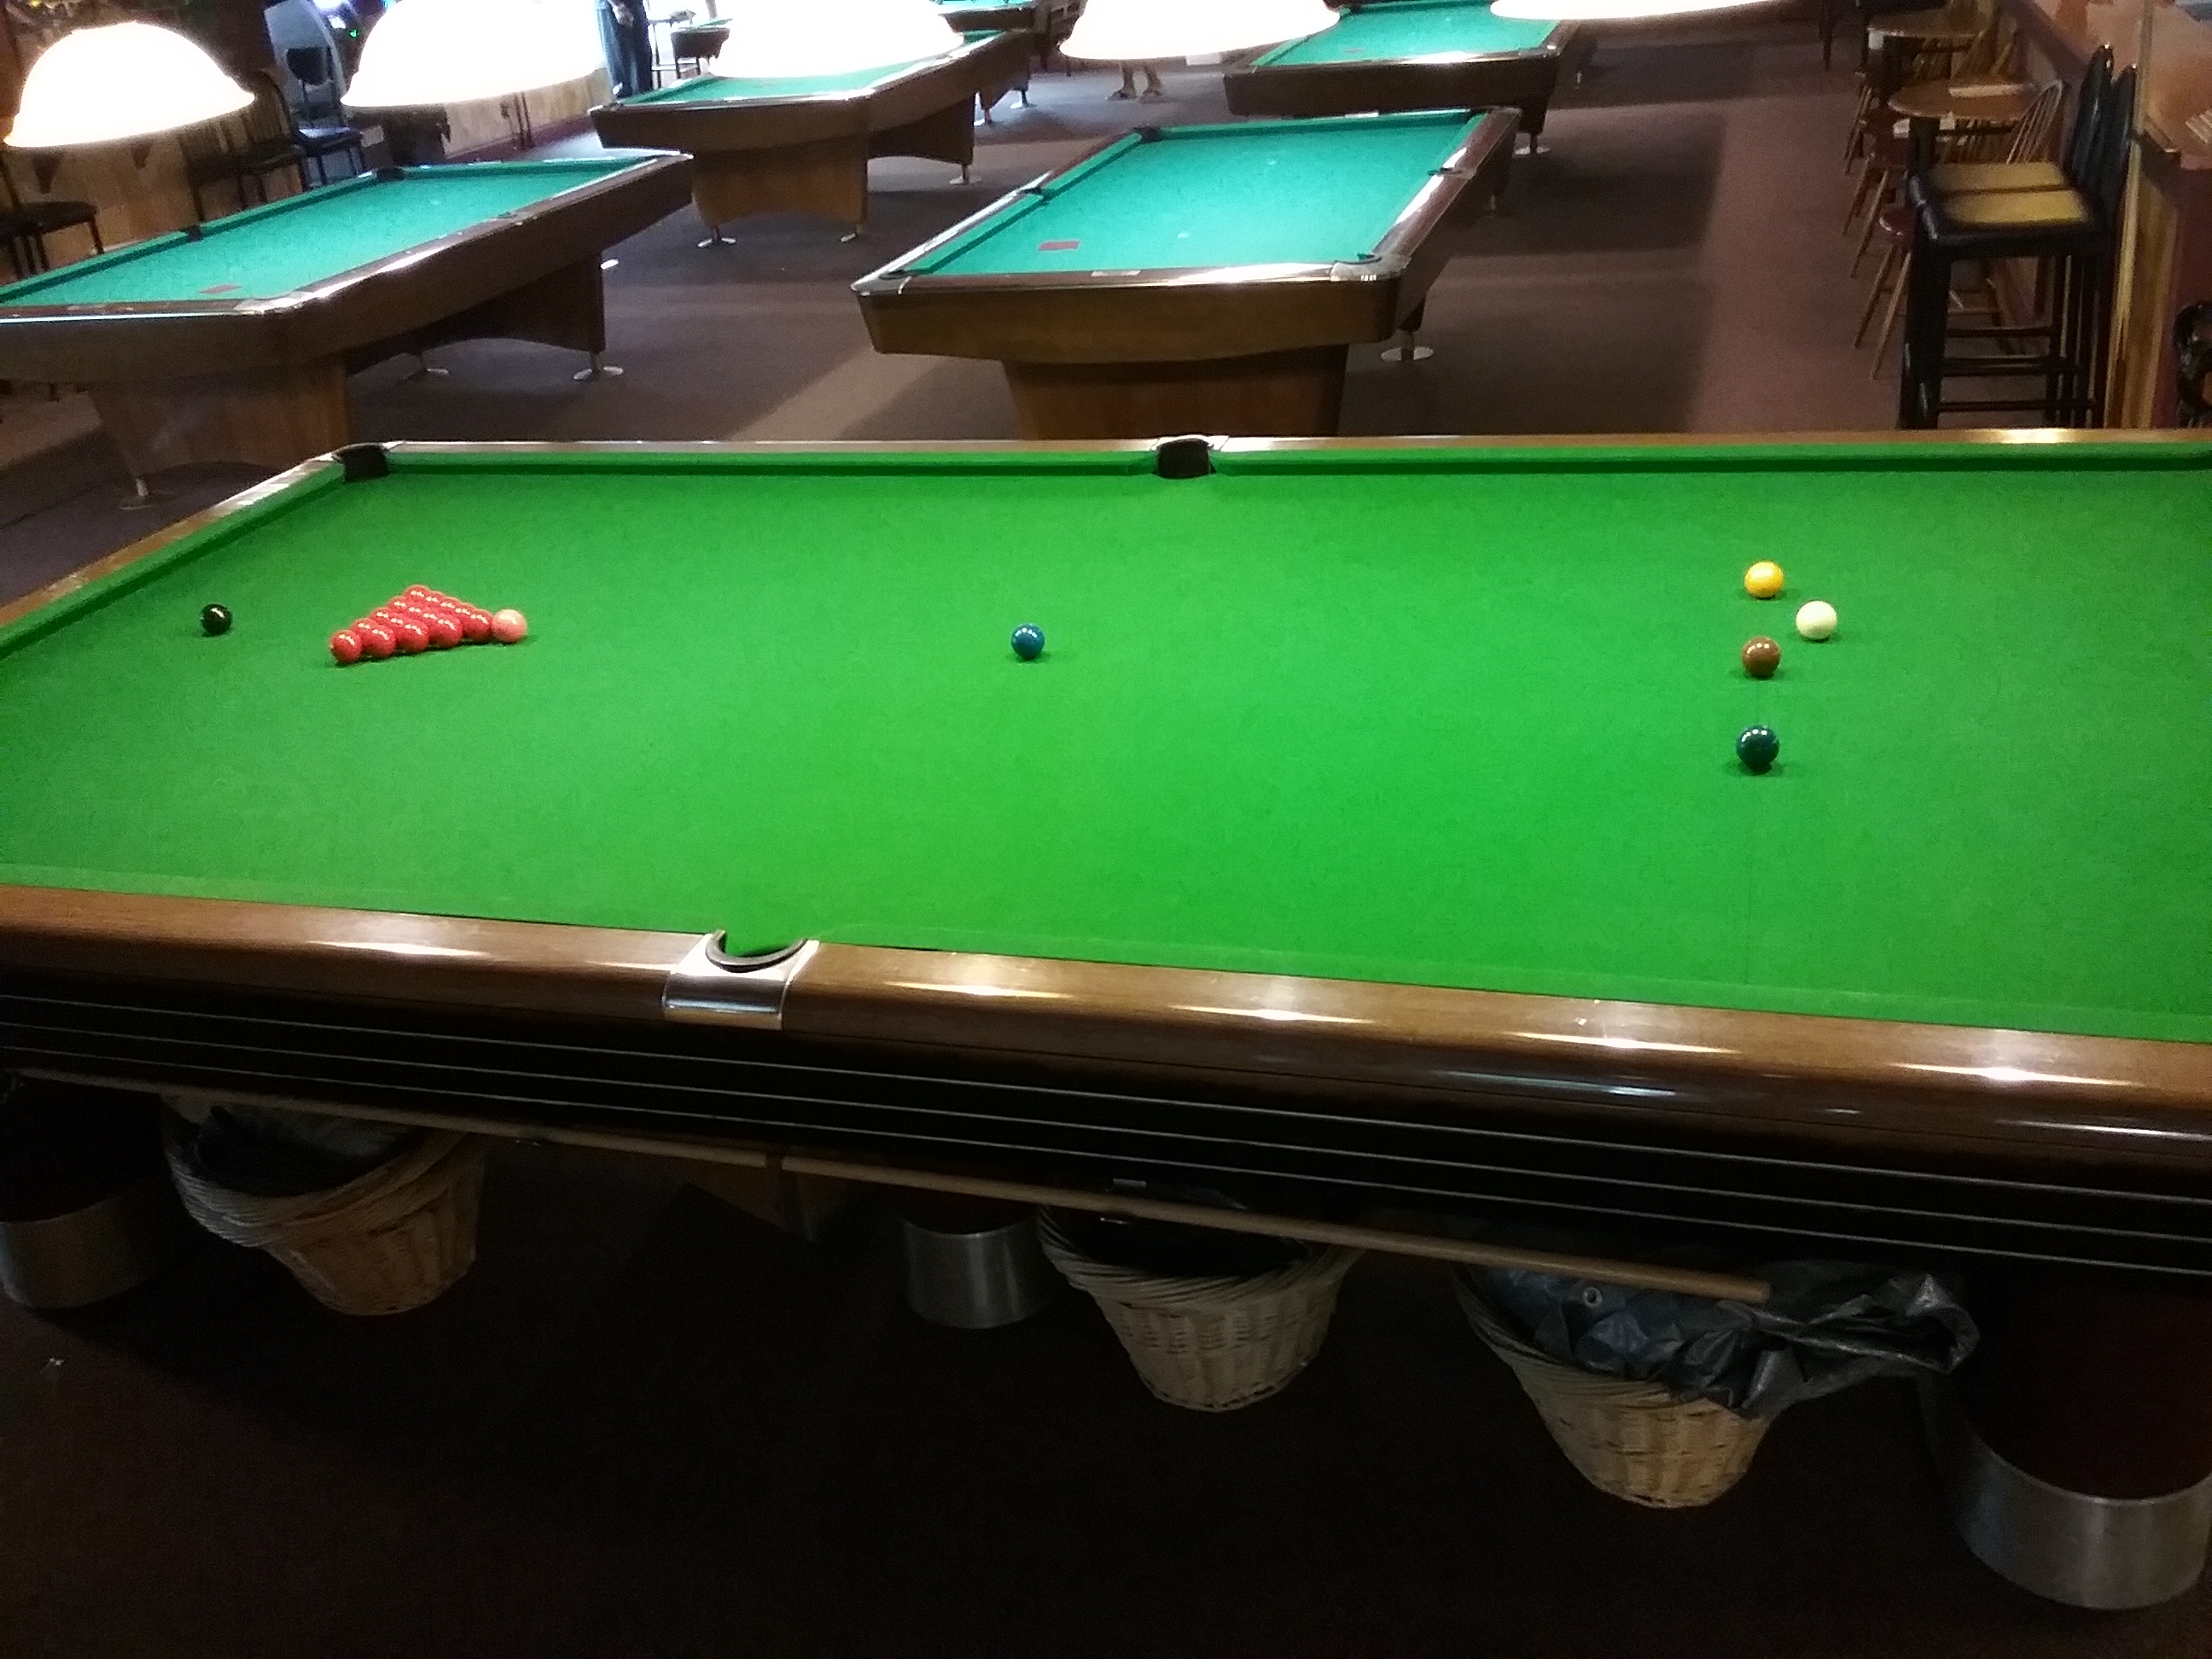 Snooker setup side profile